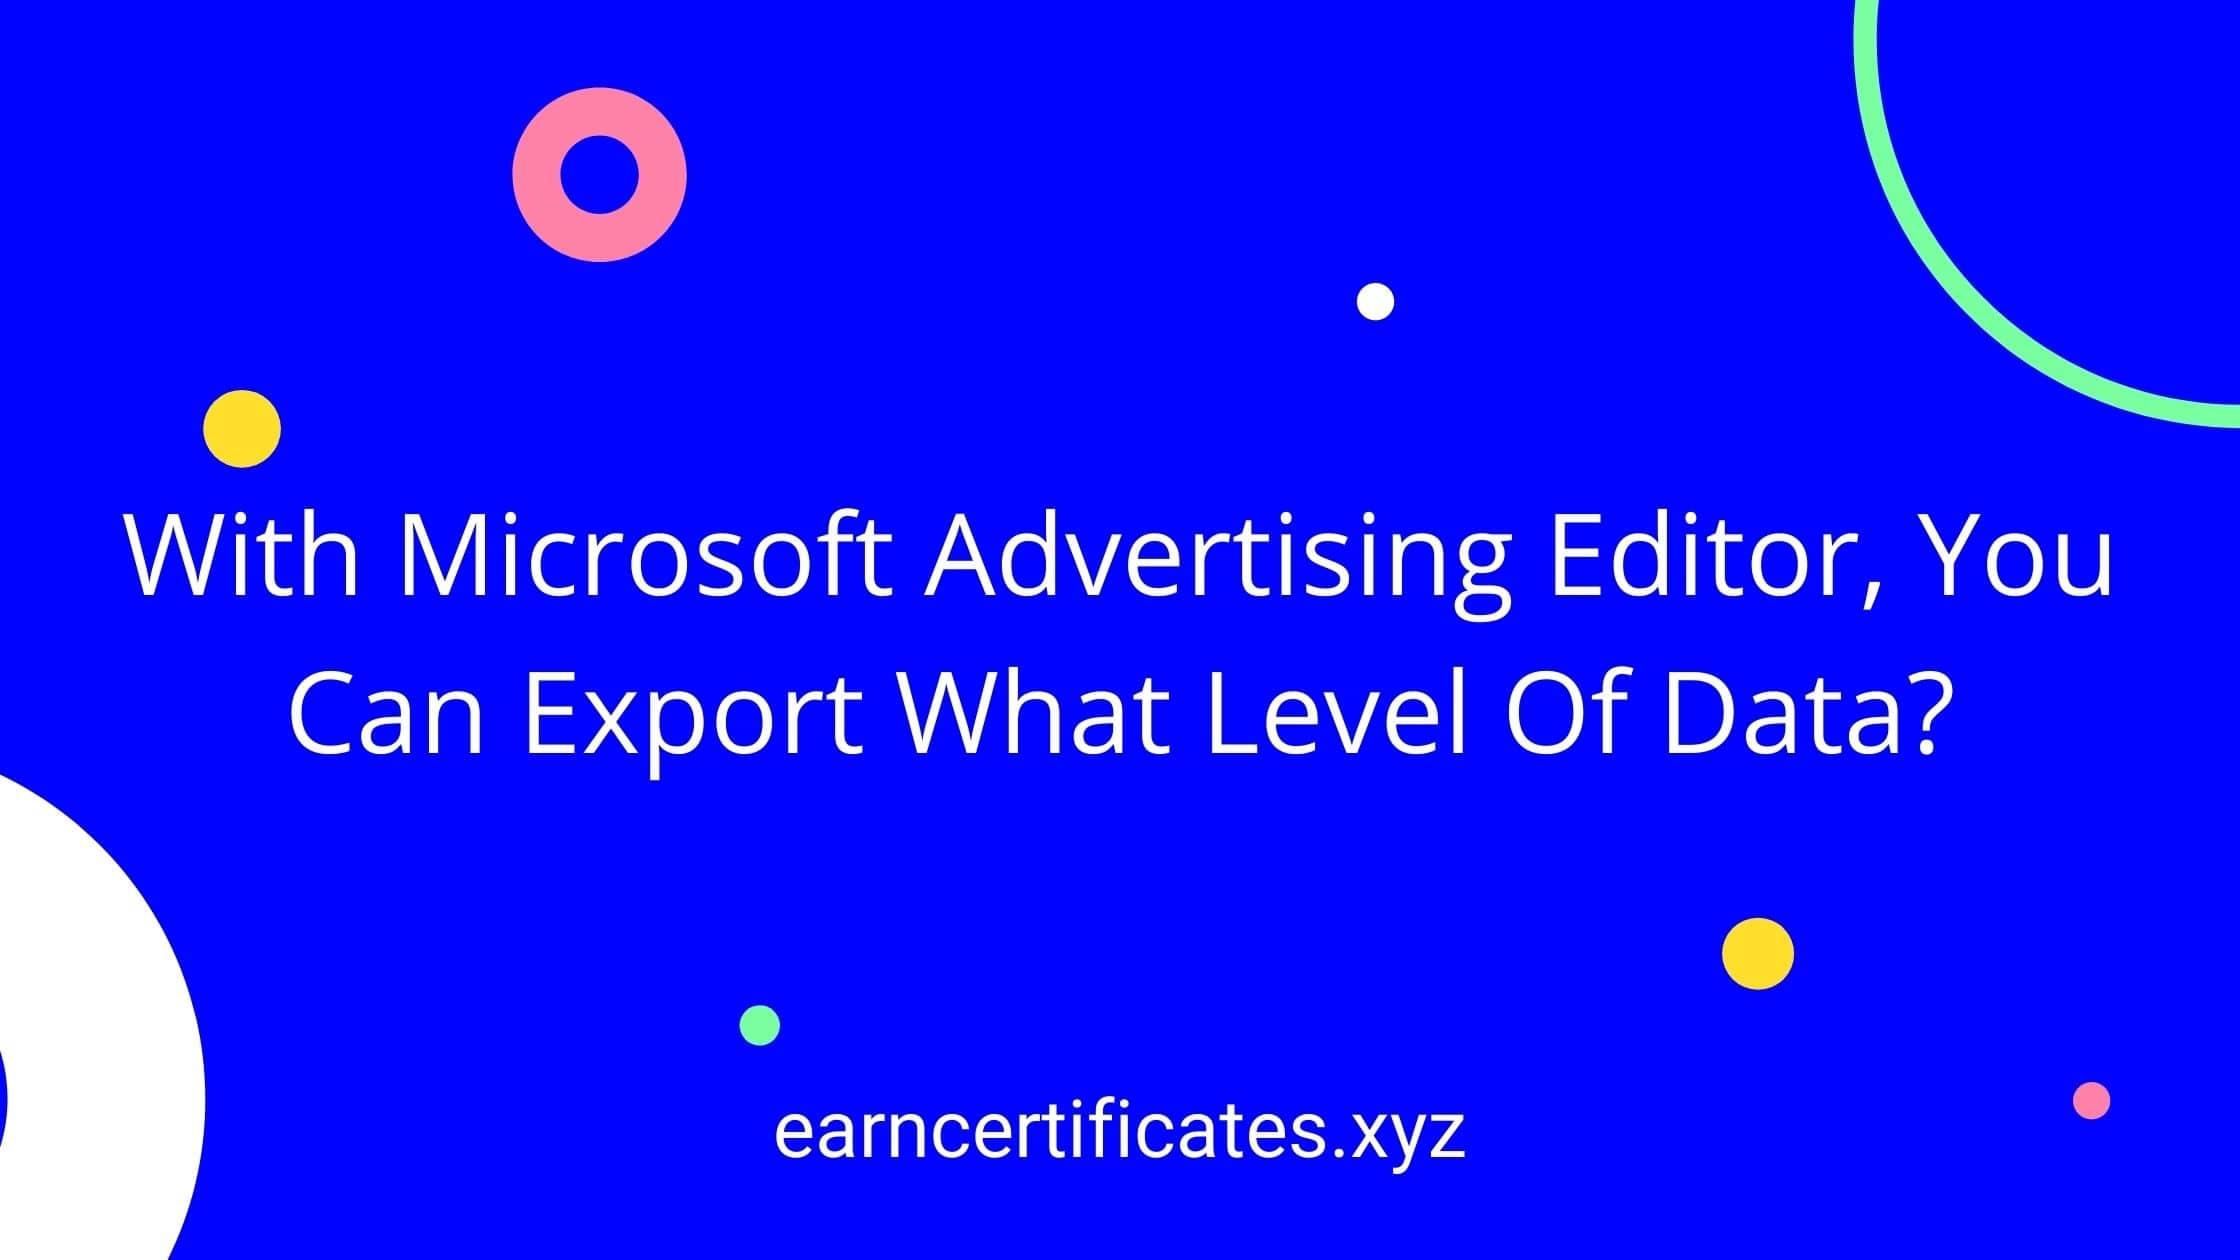 With Microsoft Advertising Editor, You Can Export What Level Of Data?